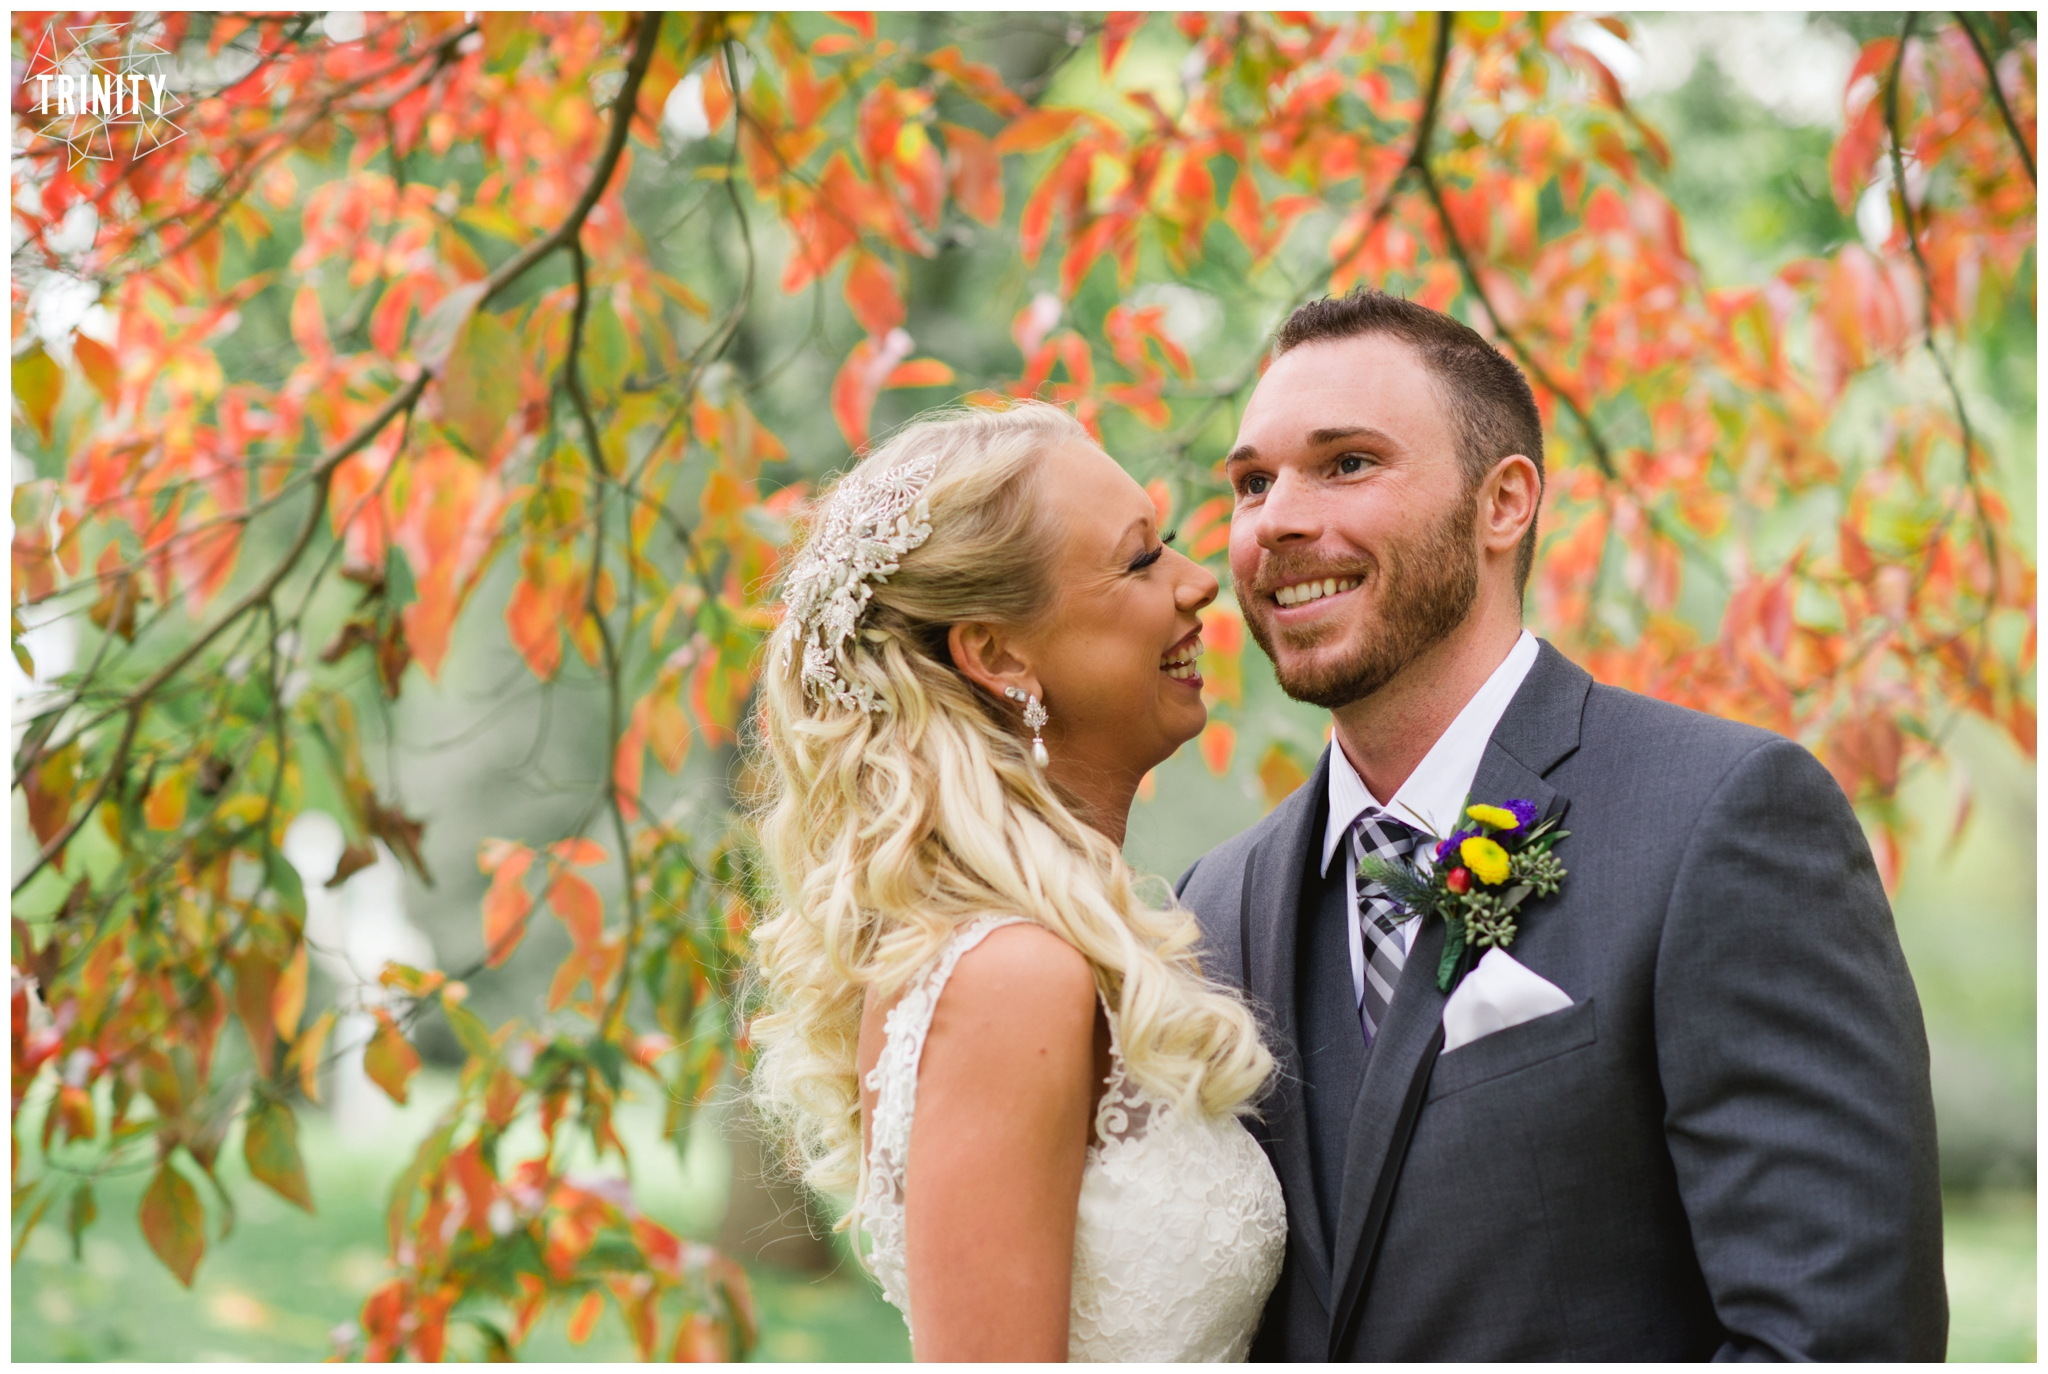 Trinity Photography Riverdale Manor wedding